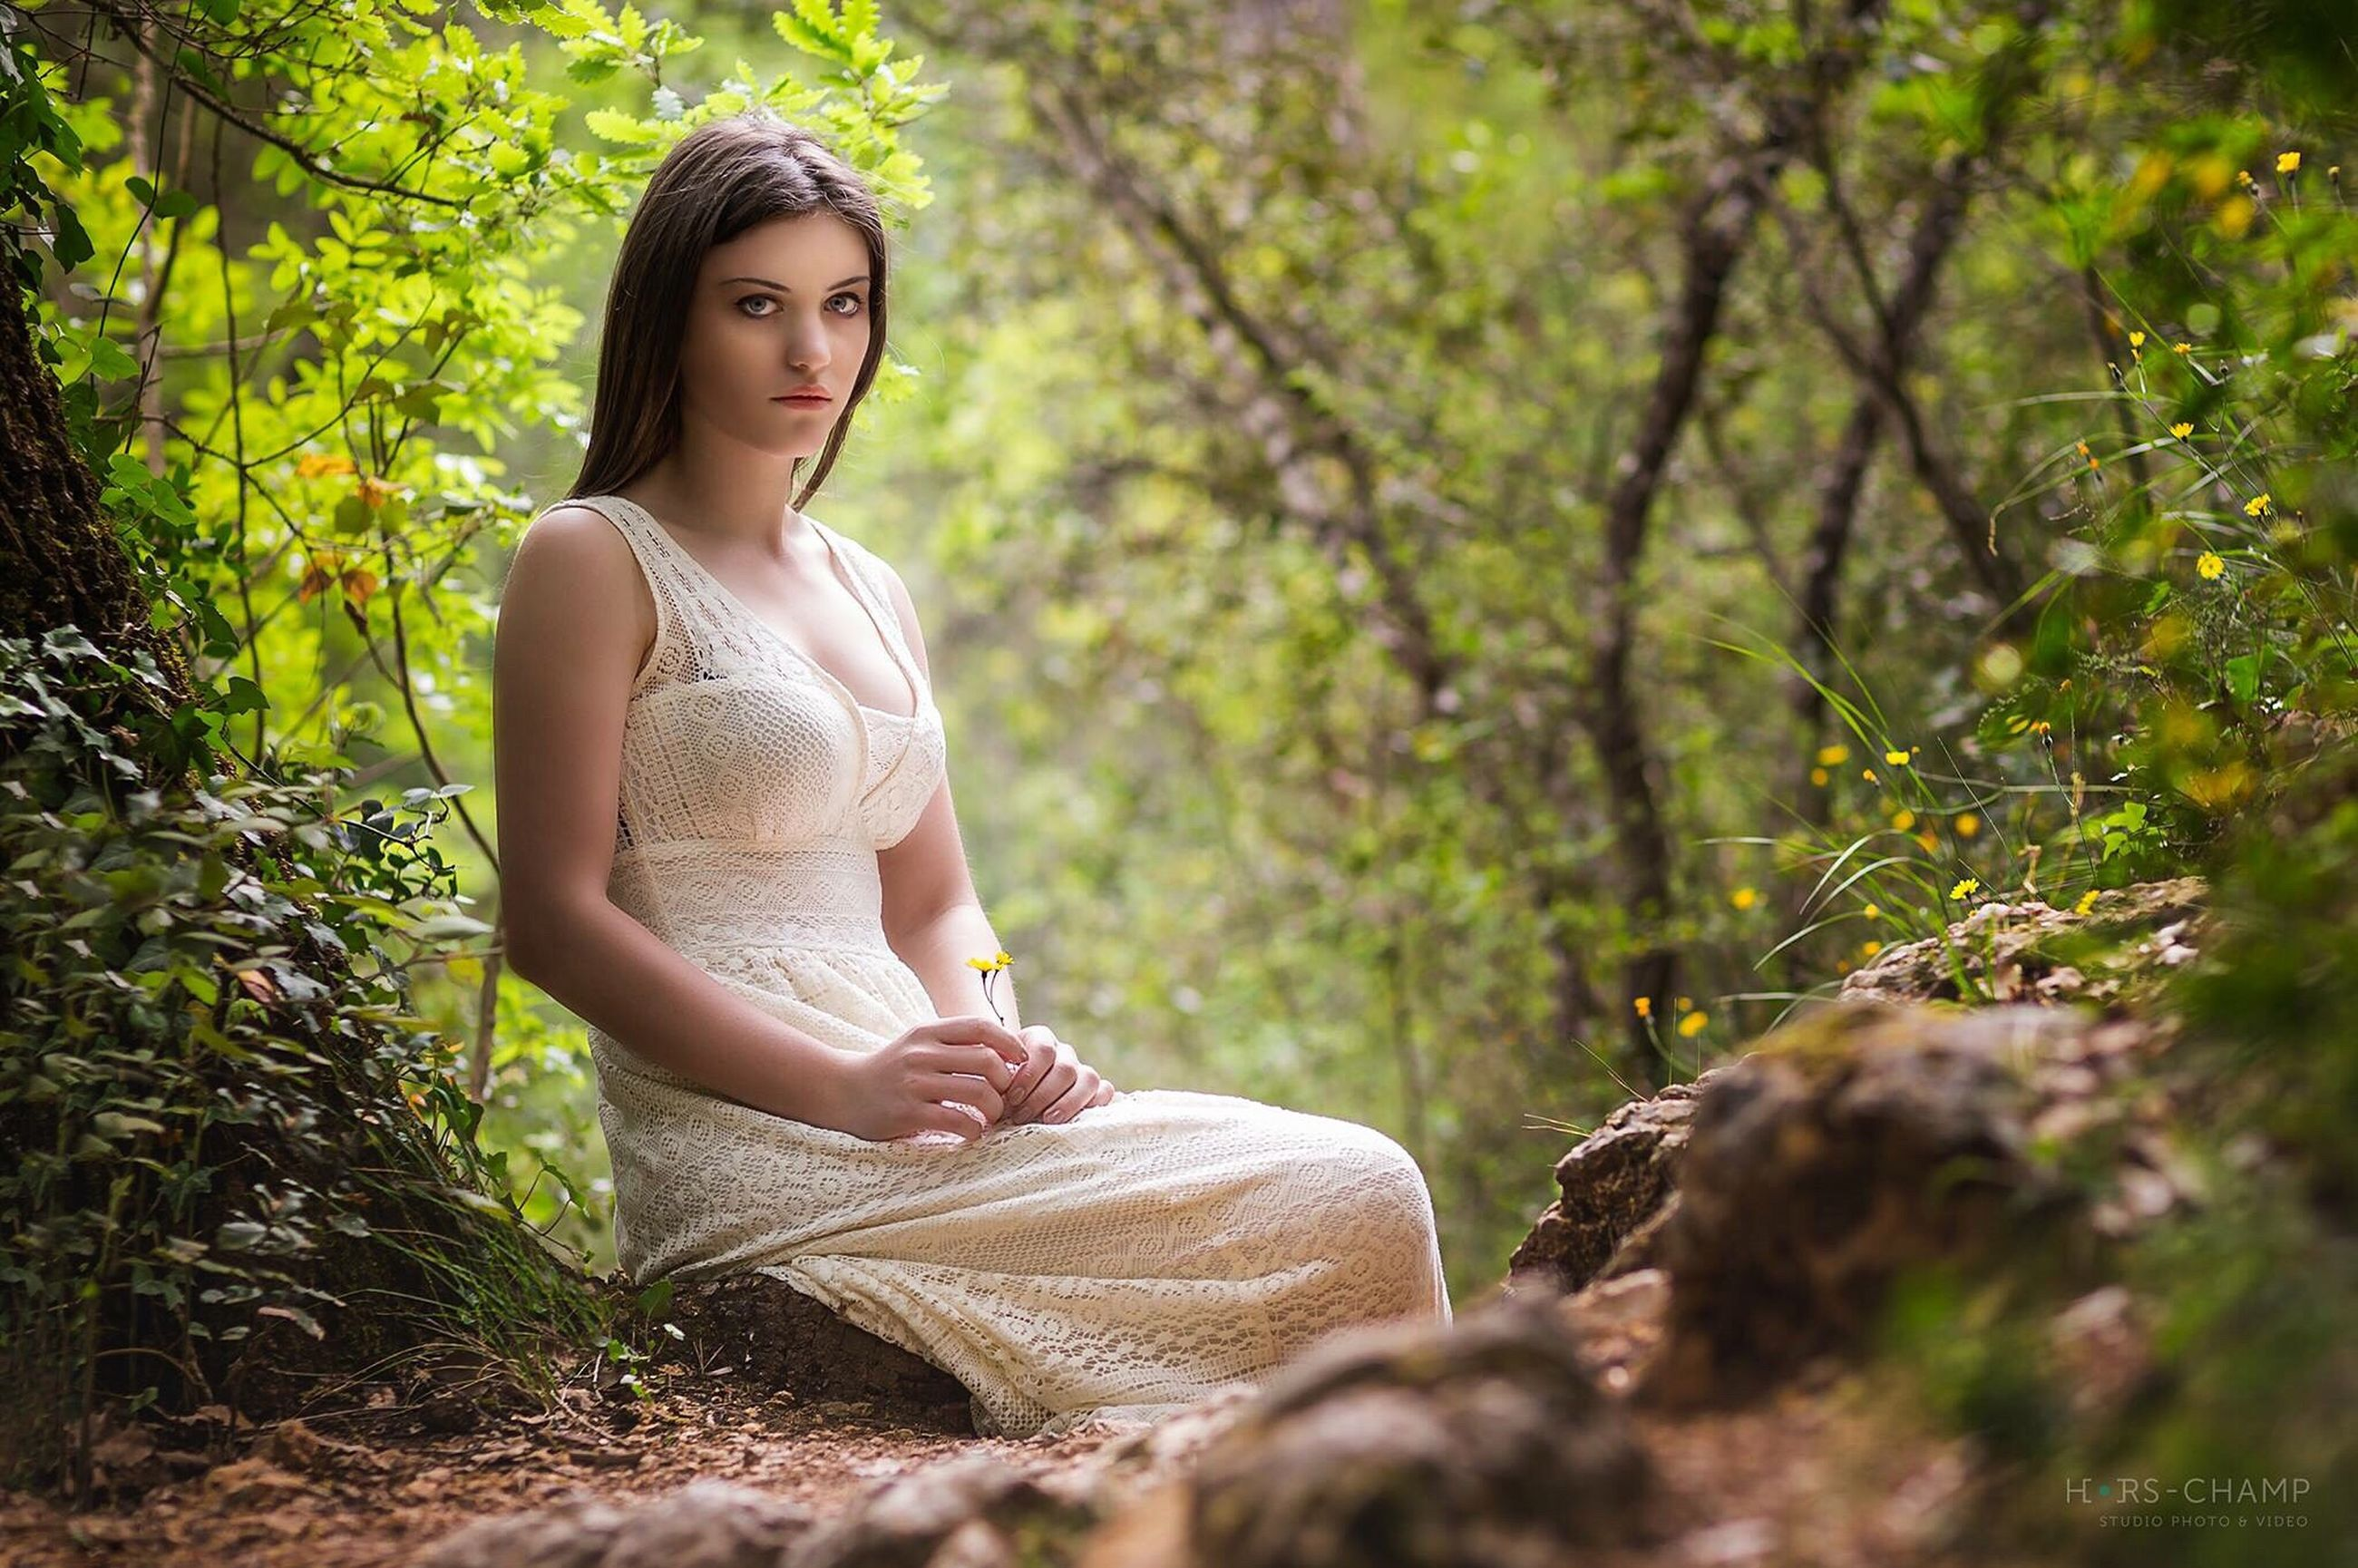 person, casual clothing, full length, lifestyles, young adult, leisure activity, tree, young women, portrait, looking at camera, forest, three quarter length, smiling, sitting, standing, front view, childhood, growth